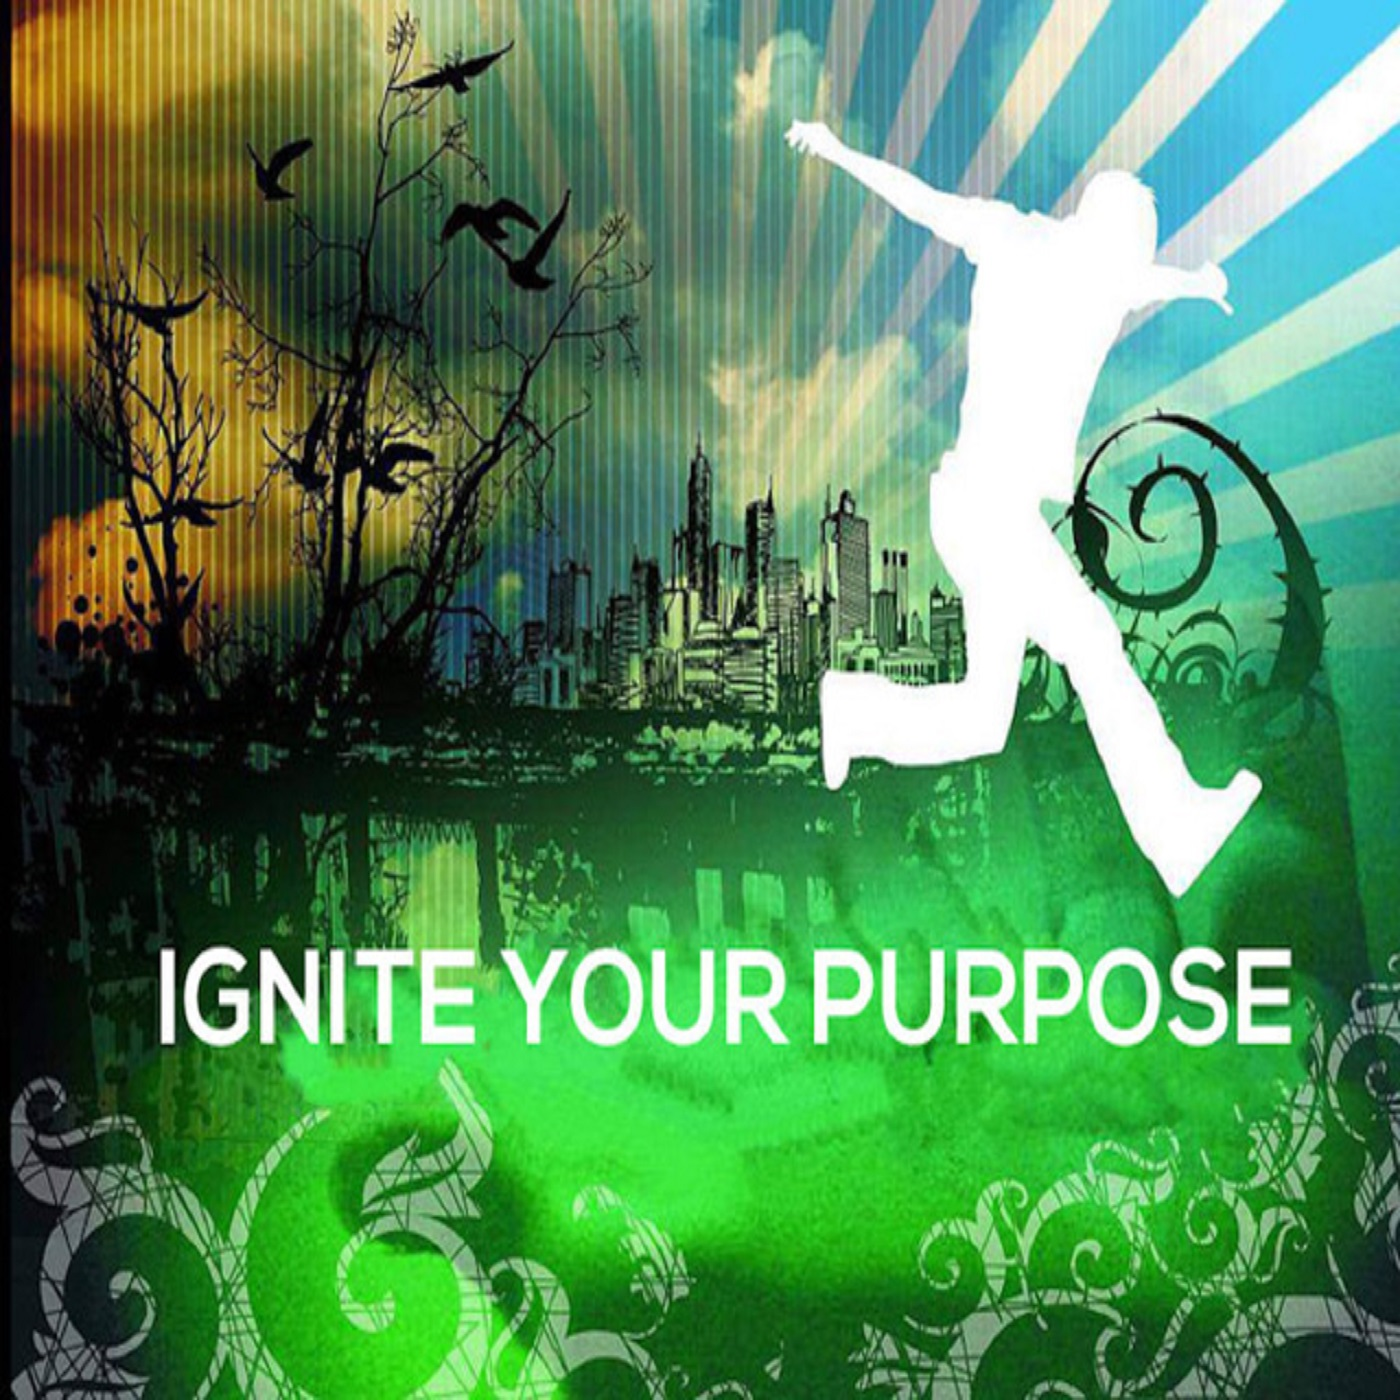 Ignite Your Purpose